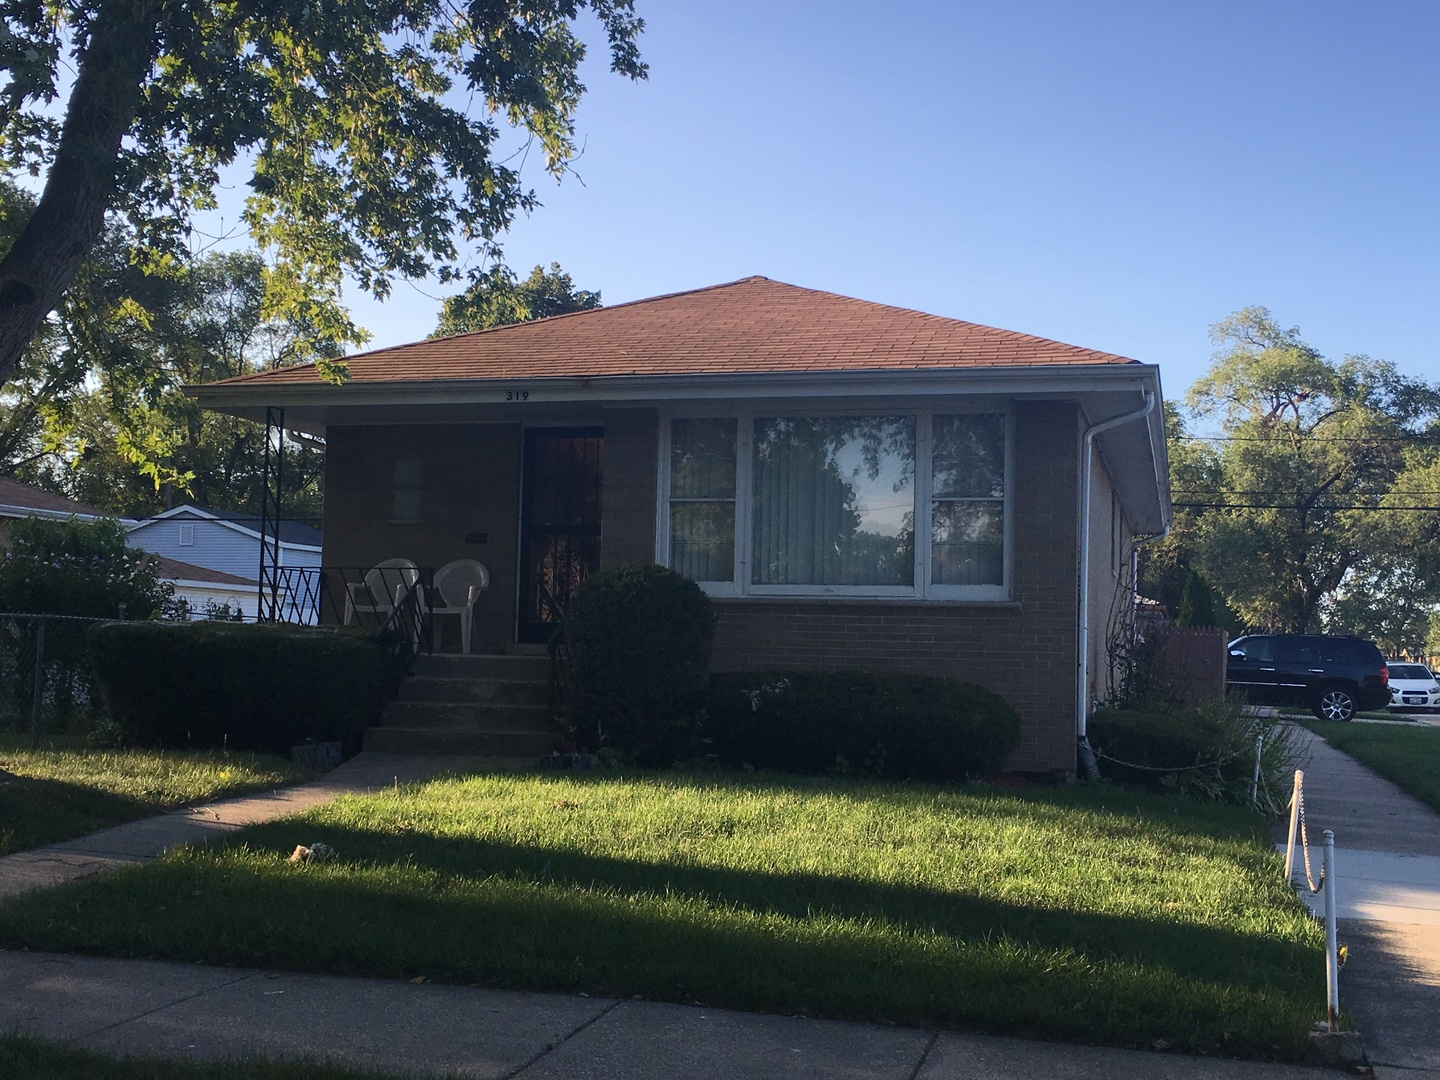 319 163rd, Harvey, Illinois 60426